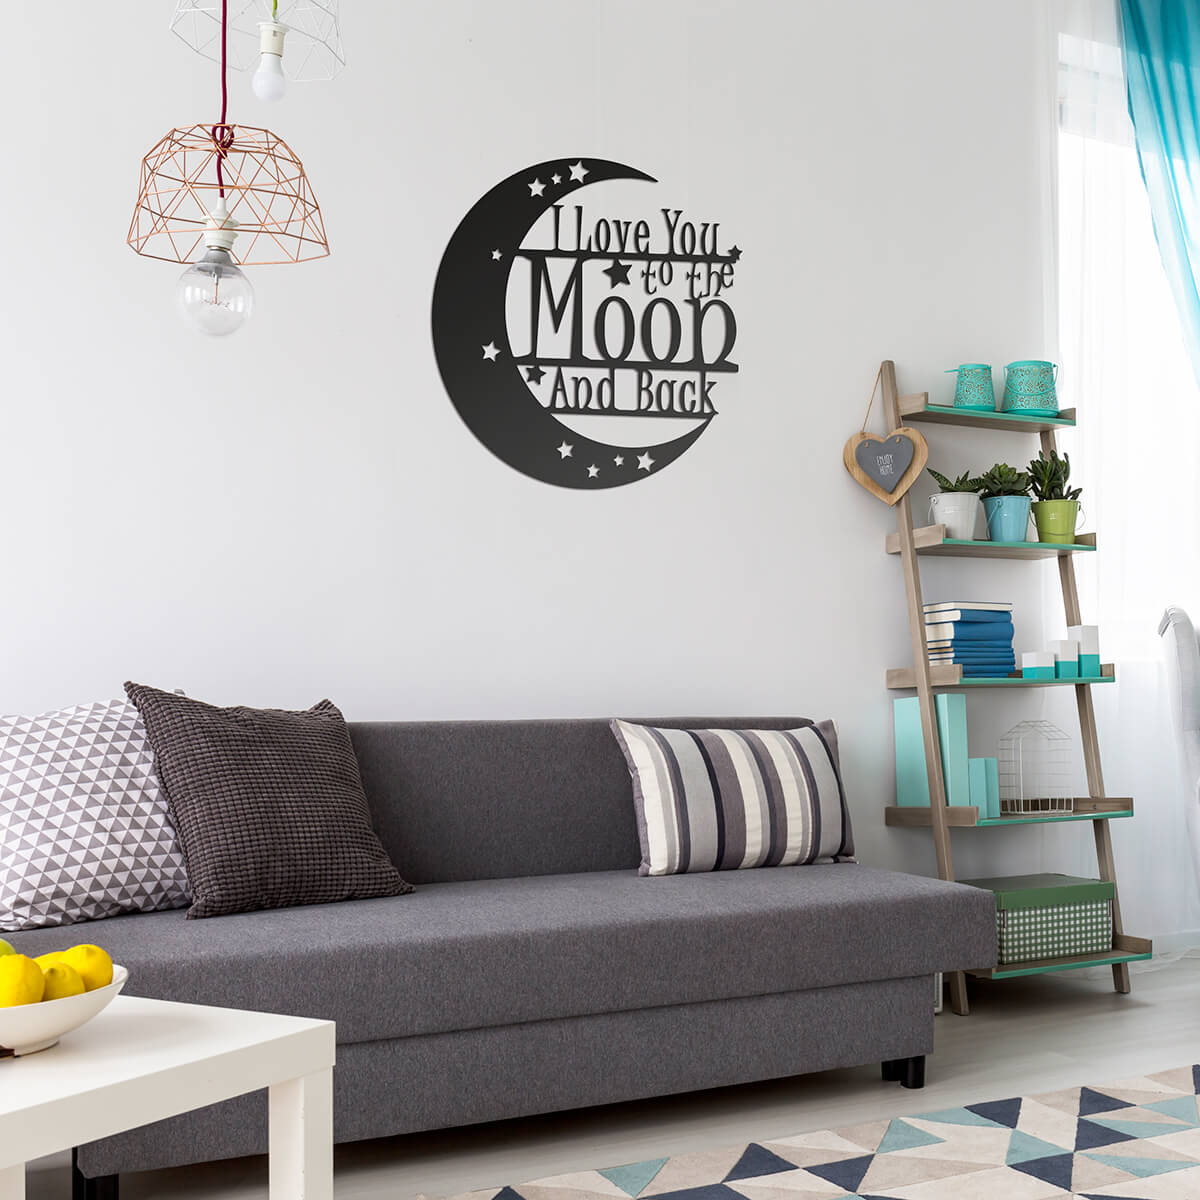 Love You To The Moon Wall Art - 2nd Ed  - RealSteel Center